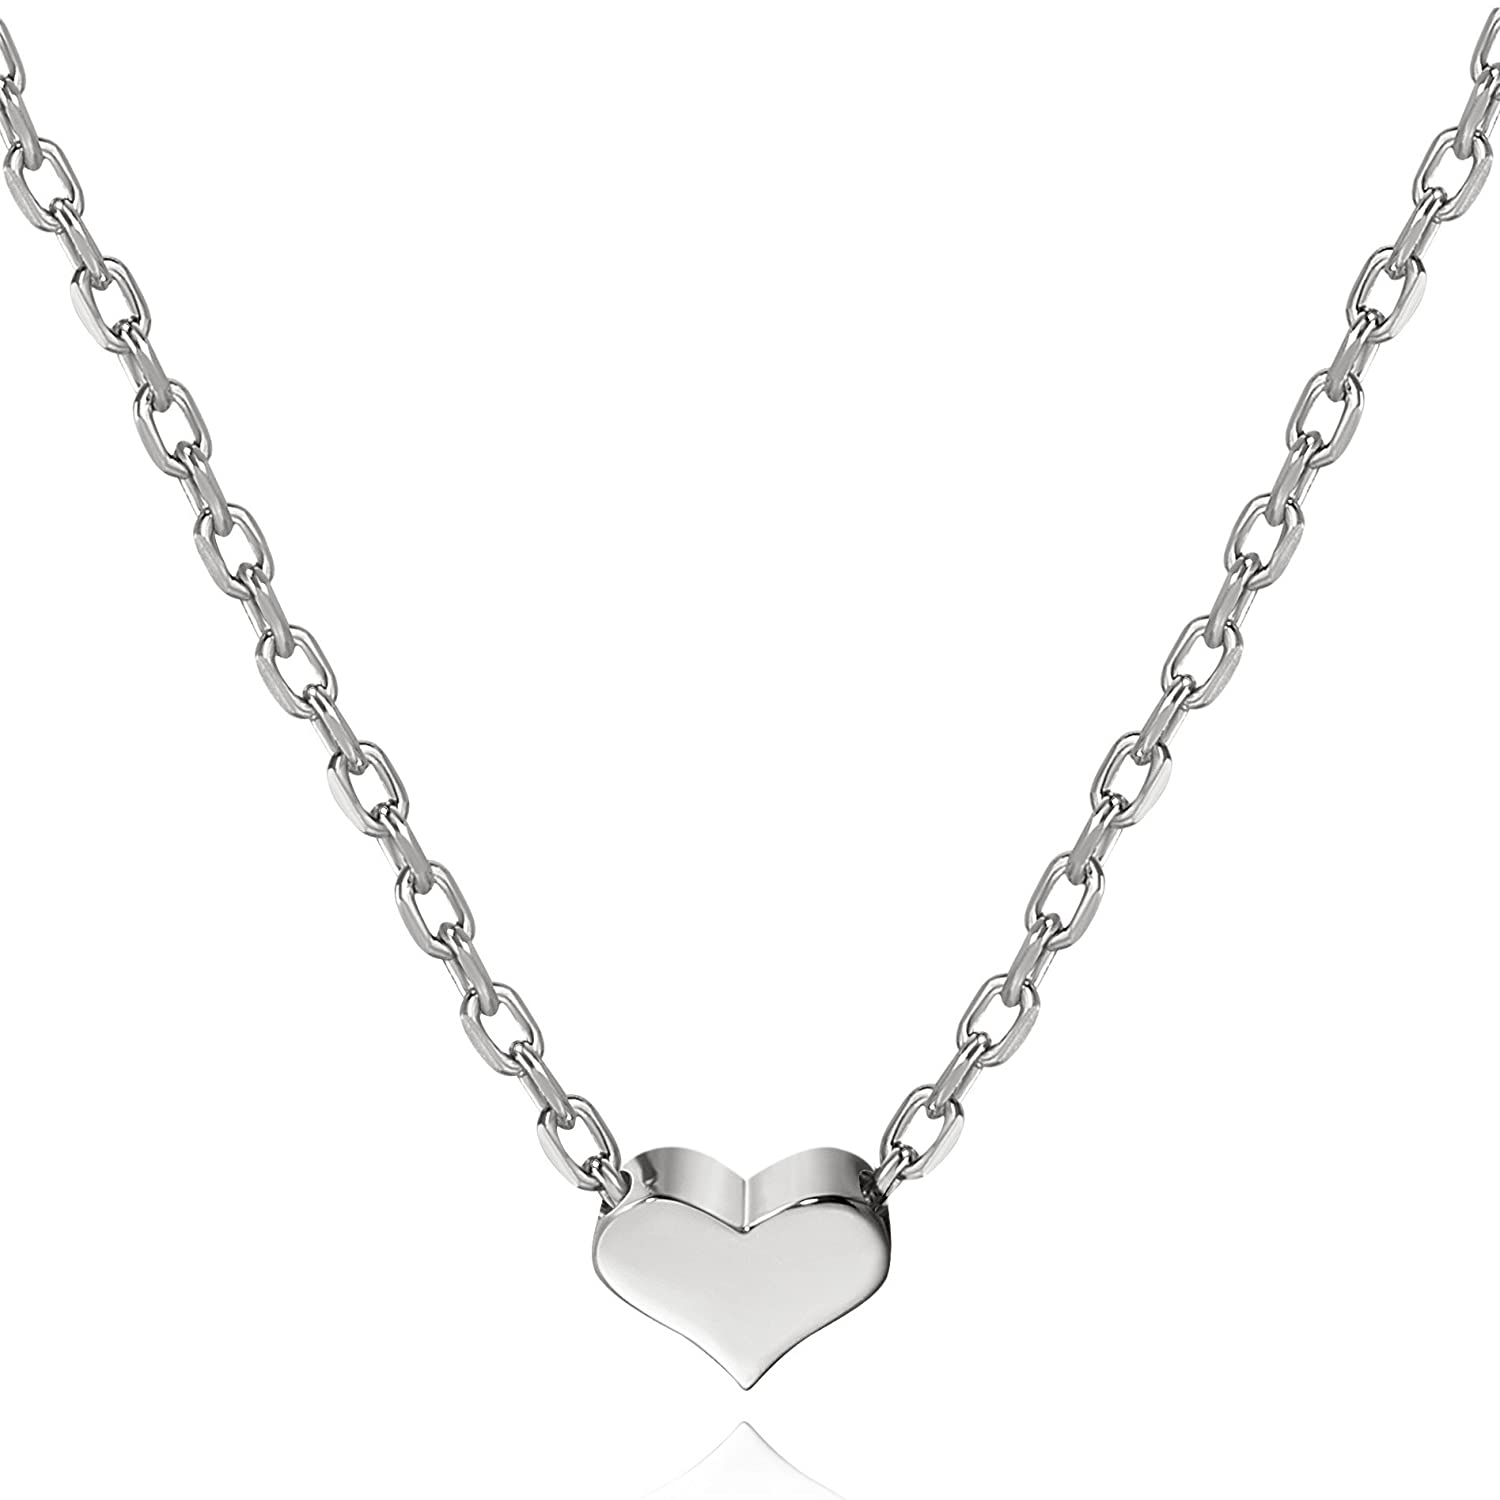 necklace necklaces os heart contempo size product jewelry jewellery